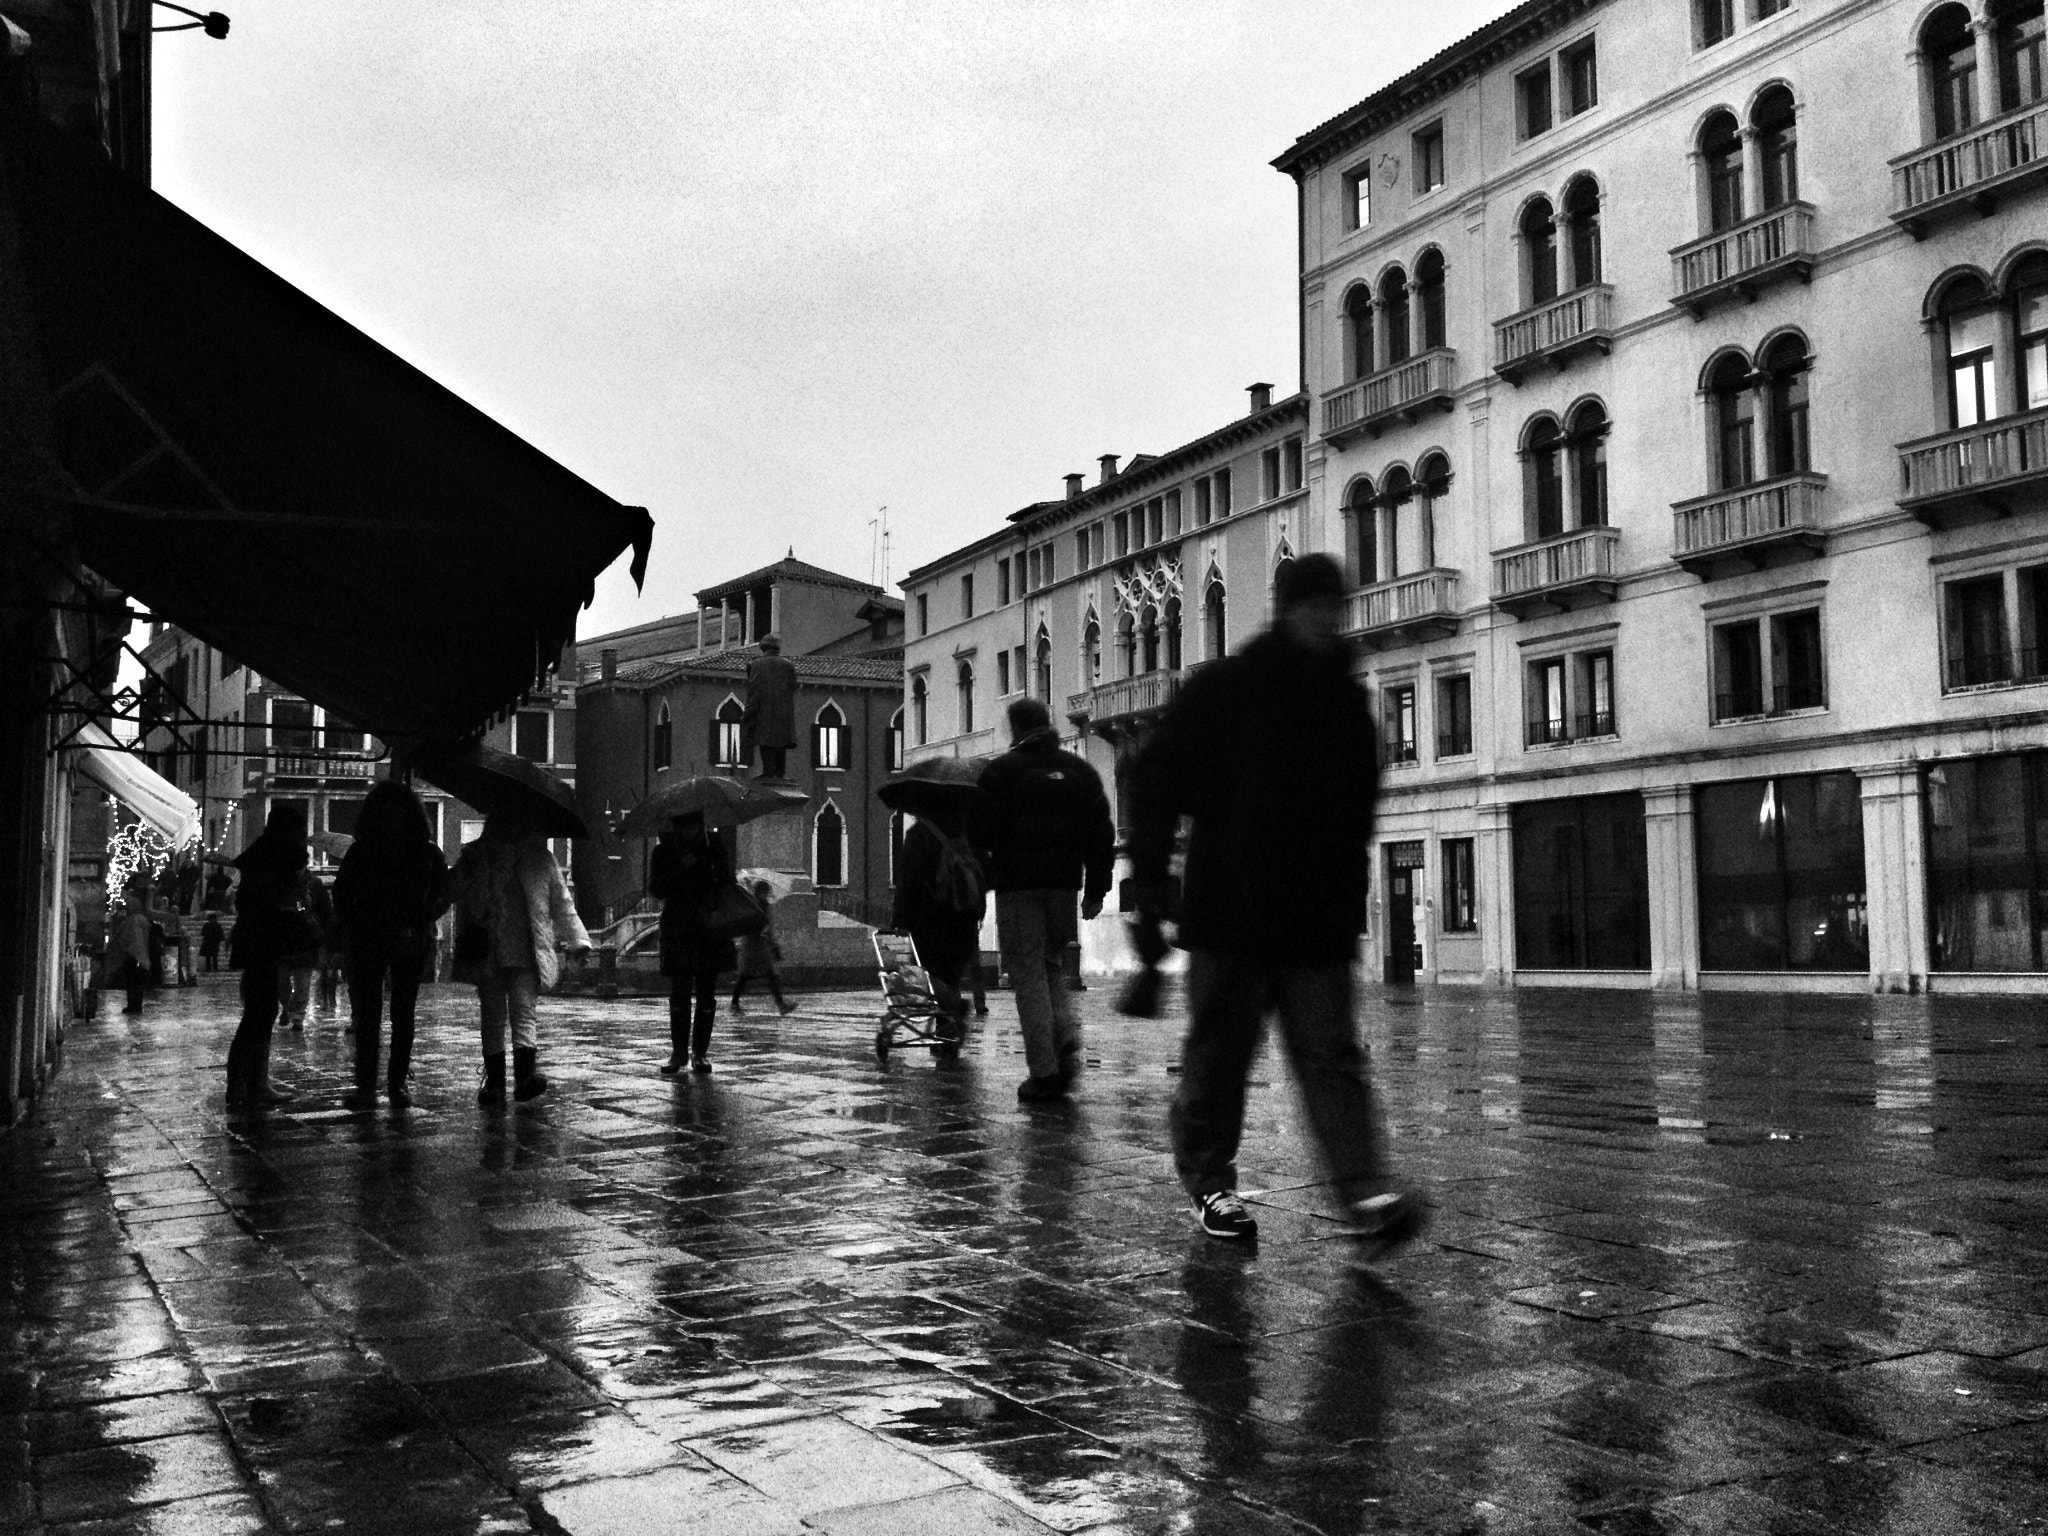 Photograph Campo Manin, Venice, on a rainy day by Andrea Maschio on 500px